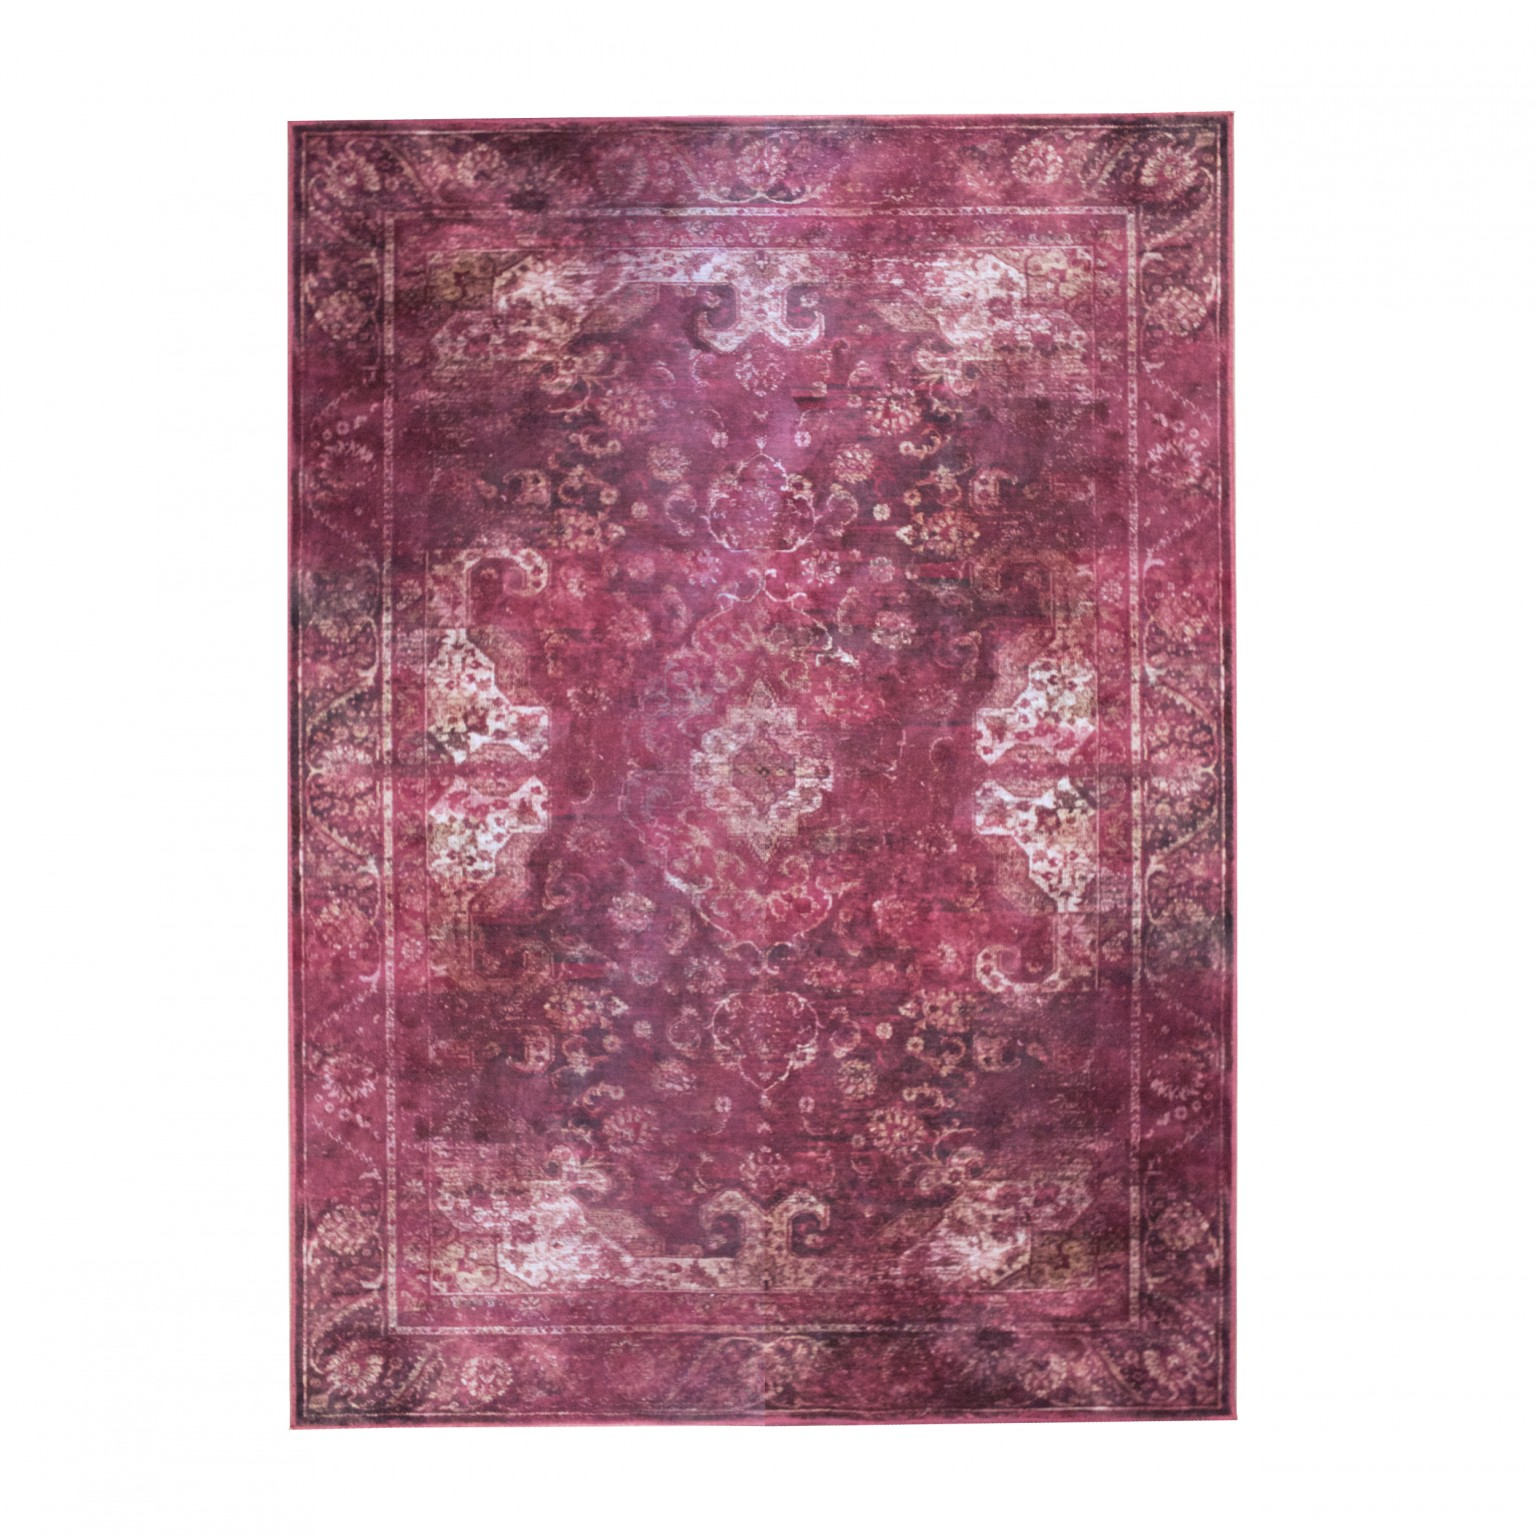 By-Boo 6170 Carpet Liv Purple 160x230cm